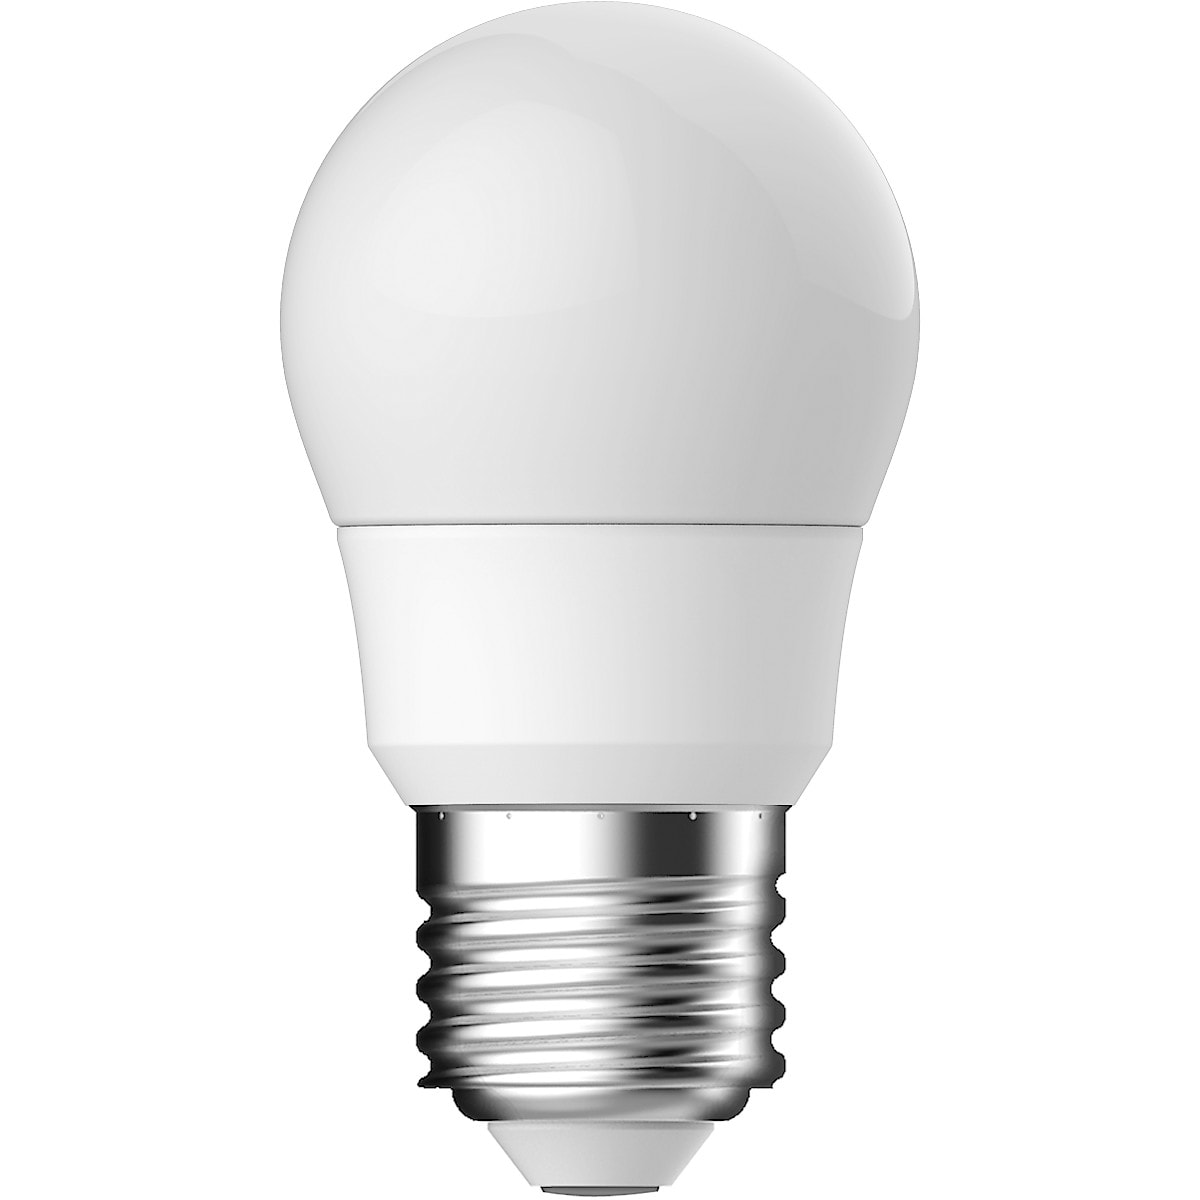 Clas Ohlson E27 LED Golf Ball Bulb